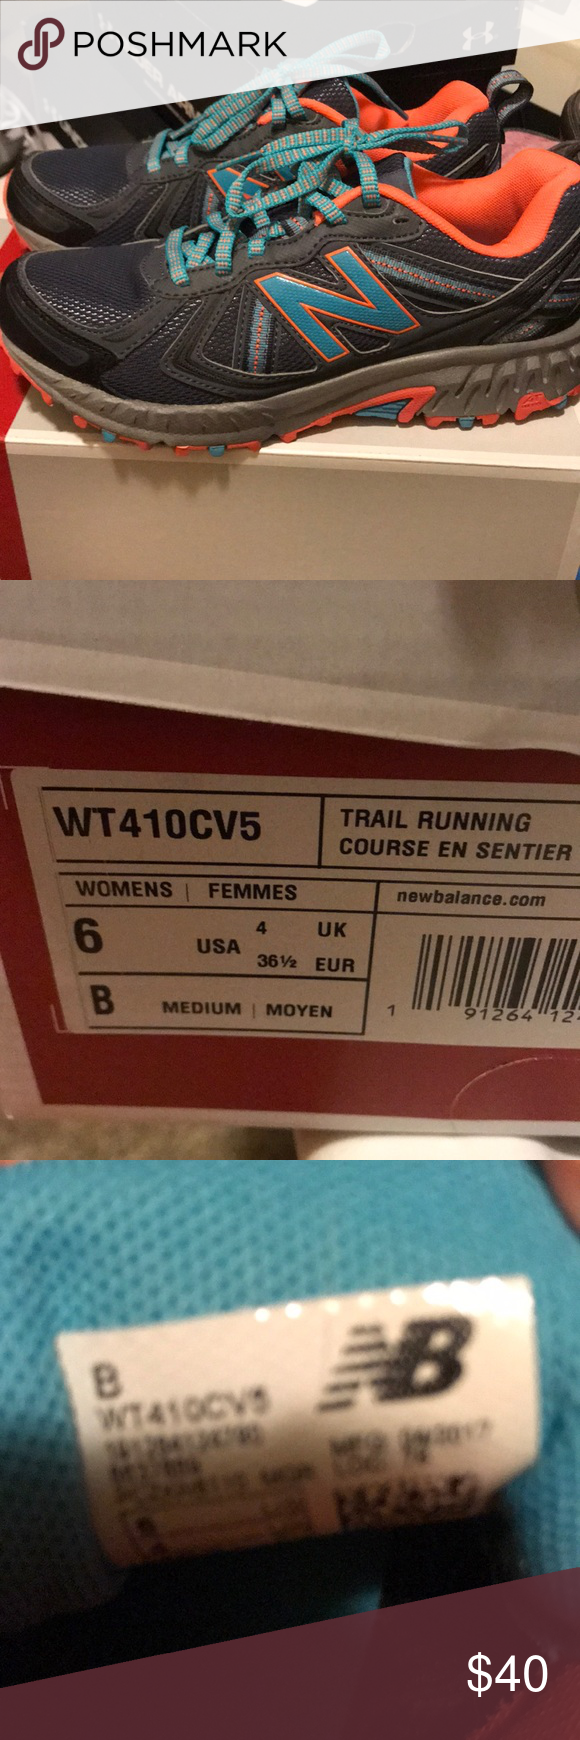 New Balance WT410CV5 Running Shoes in